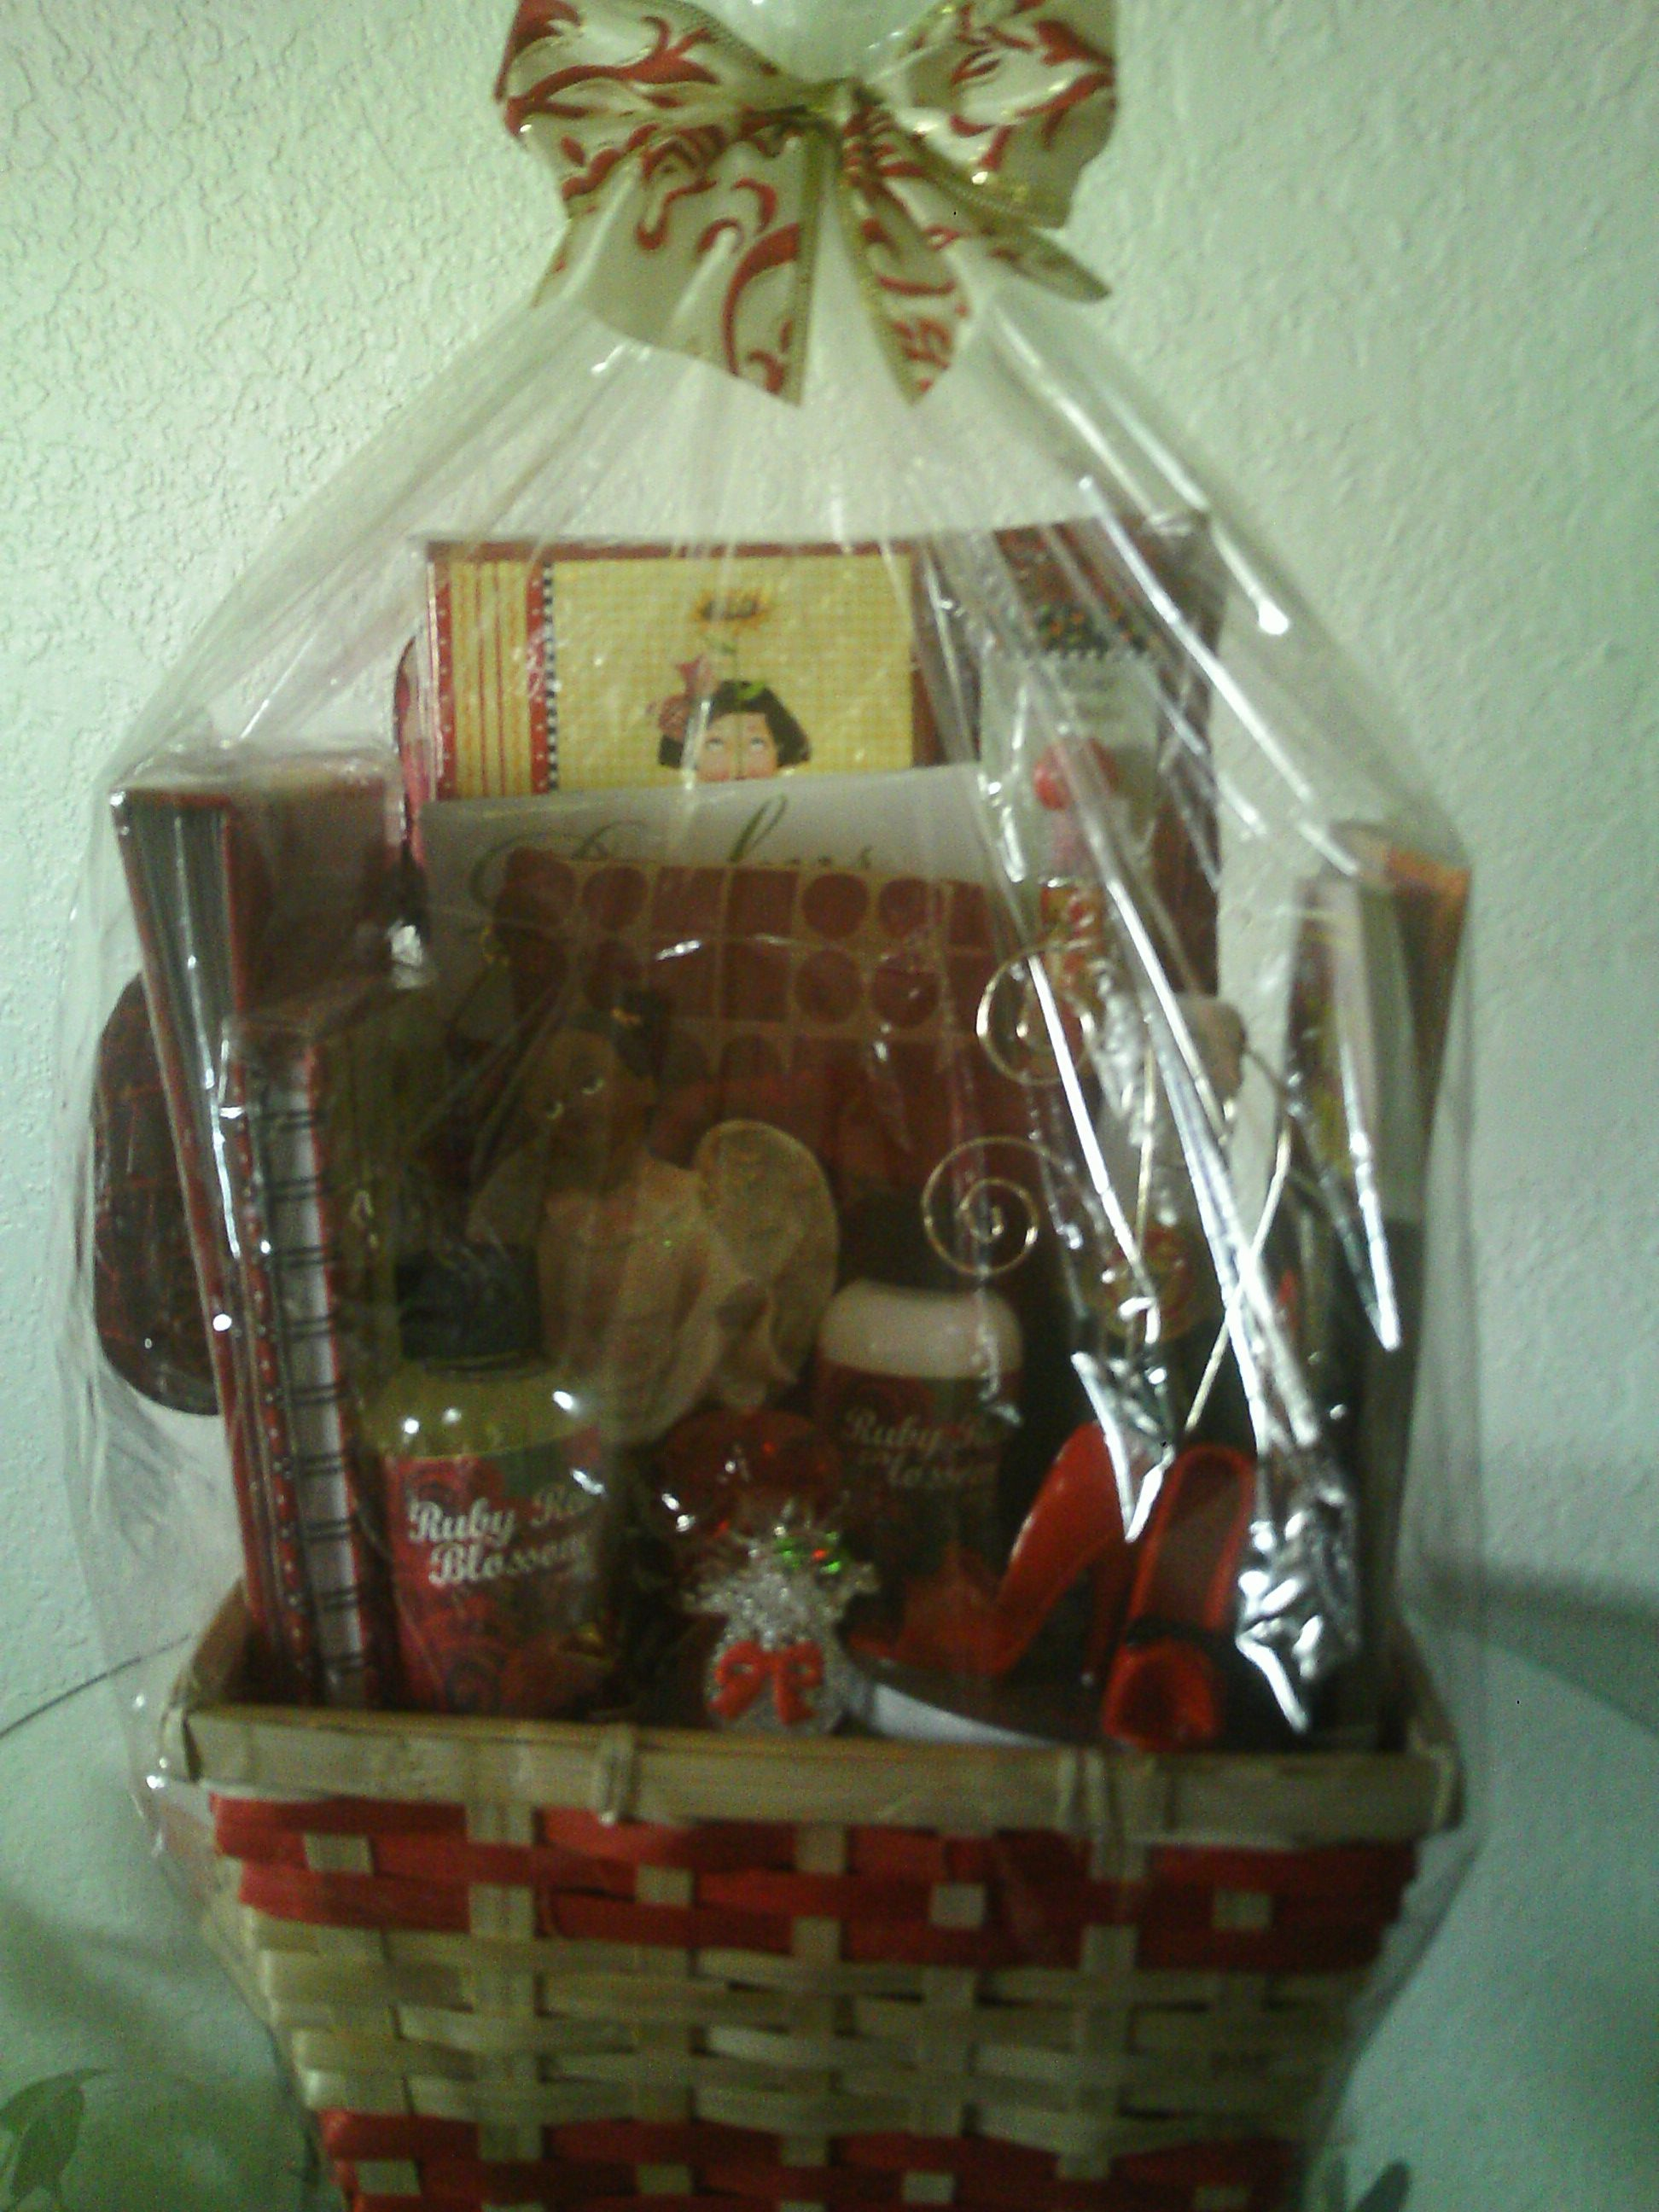 Pastors wife gift basket created by joyce www pastors wife gift basket created by joyce joycessgiftsandmore negle Choice Image